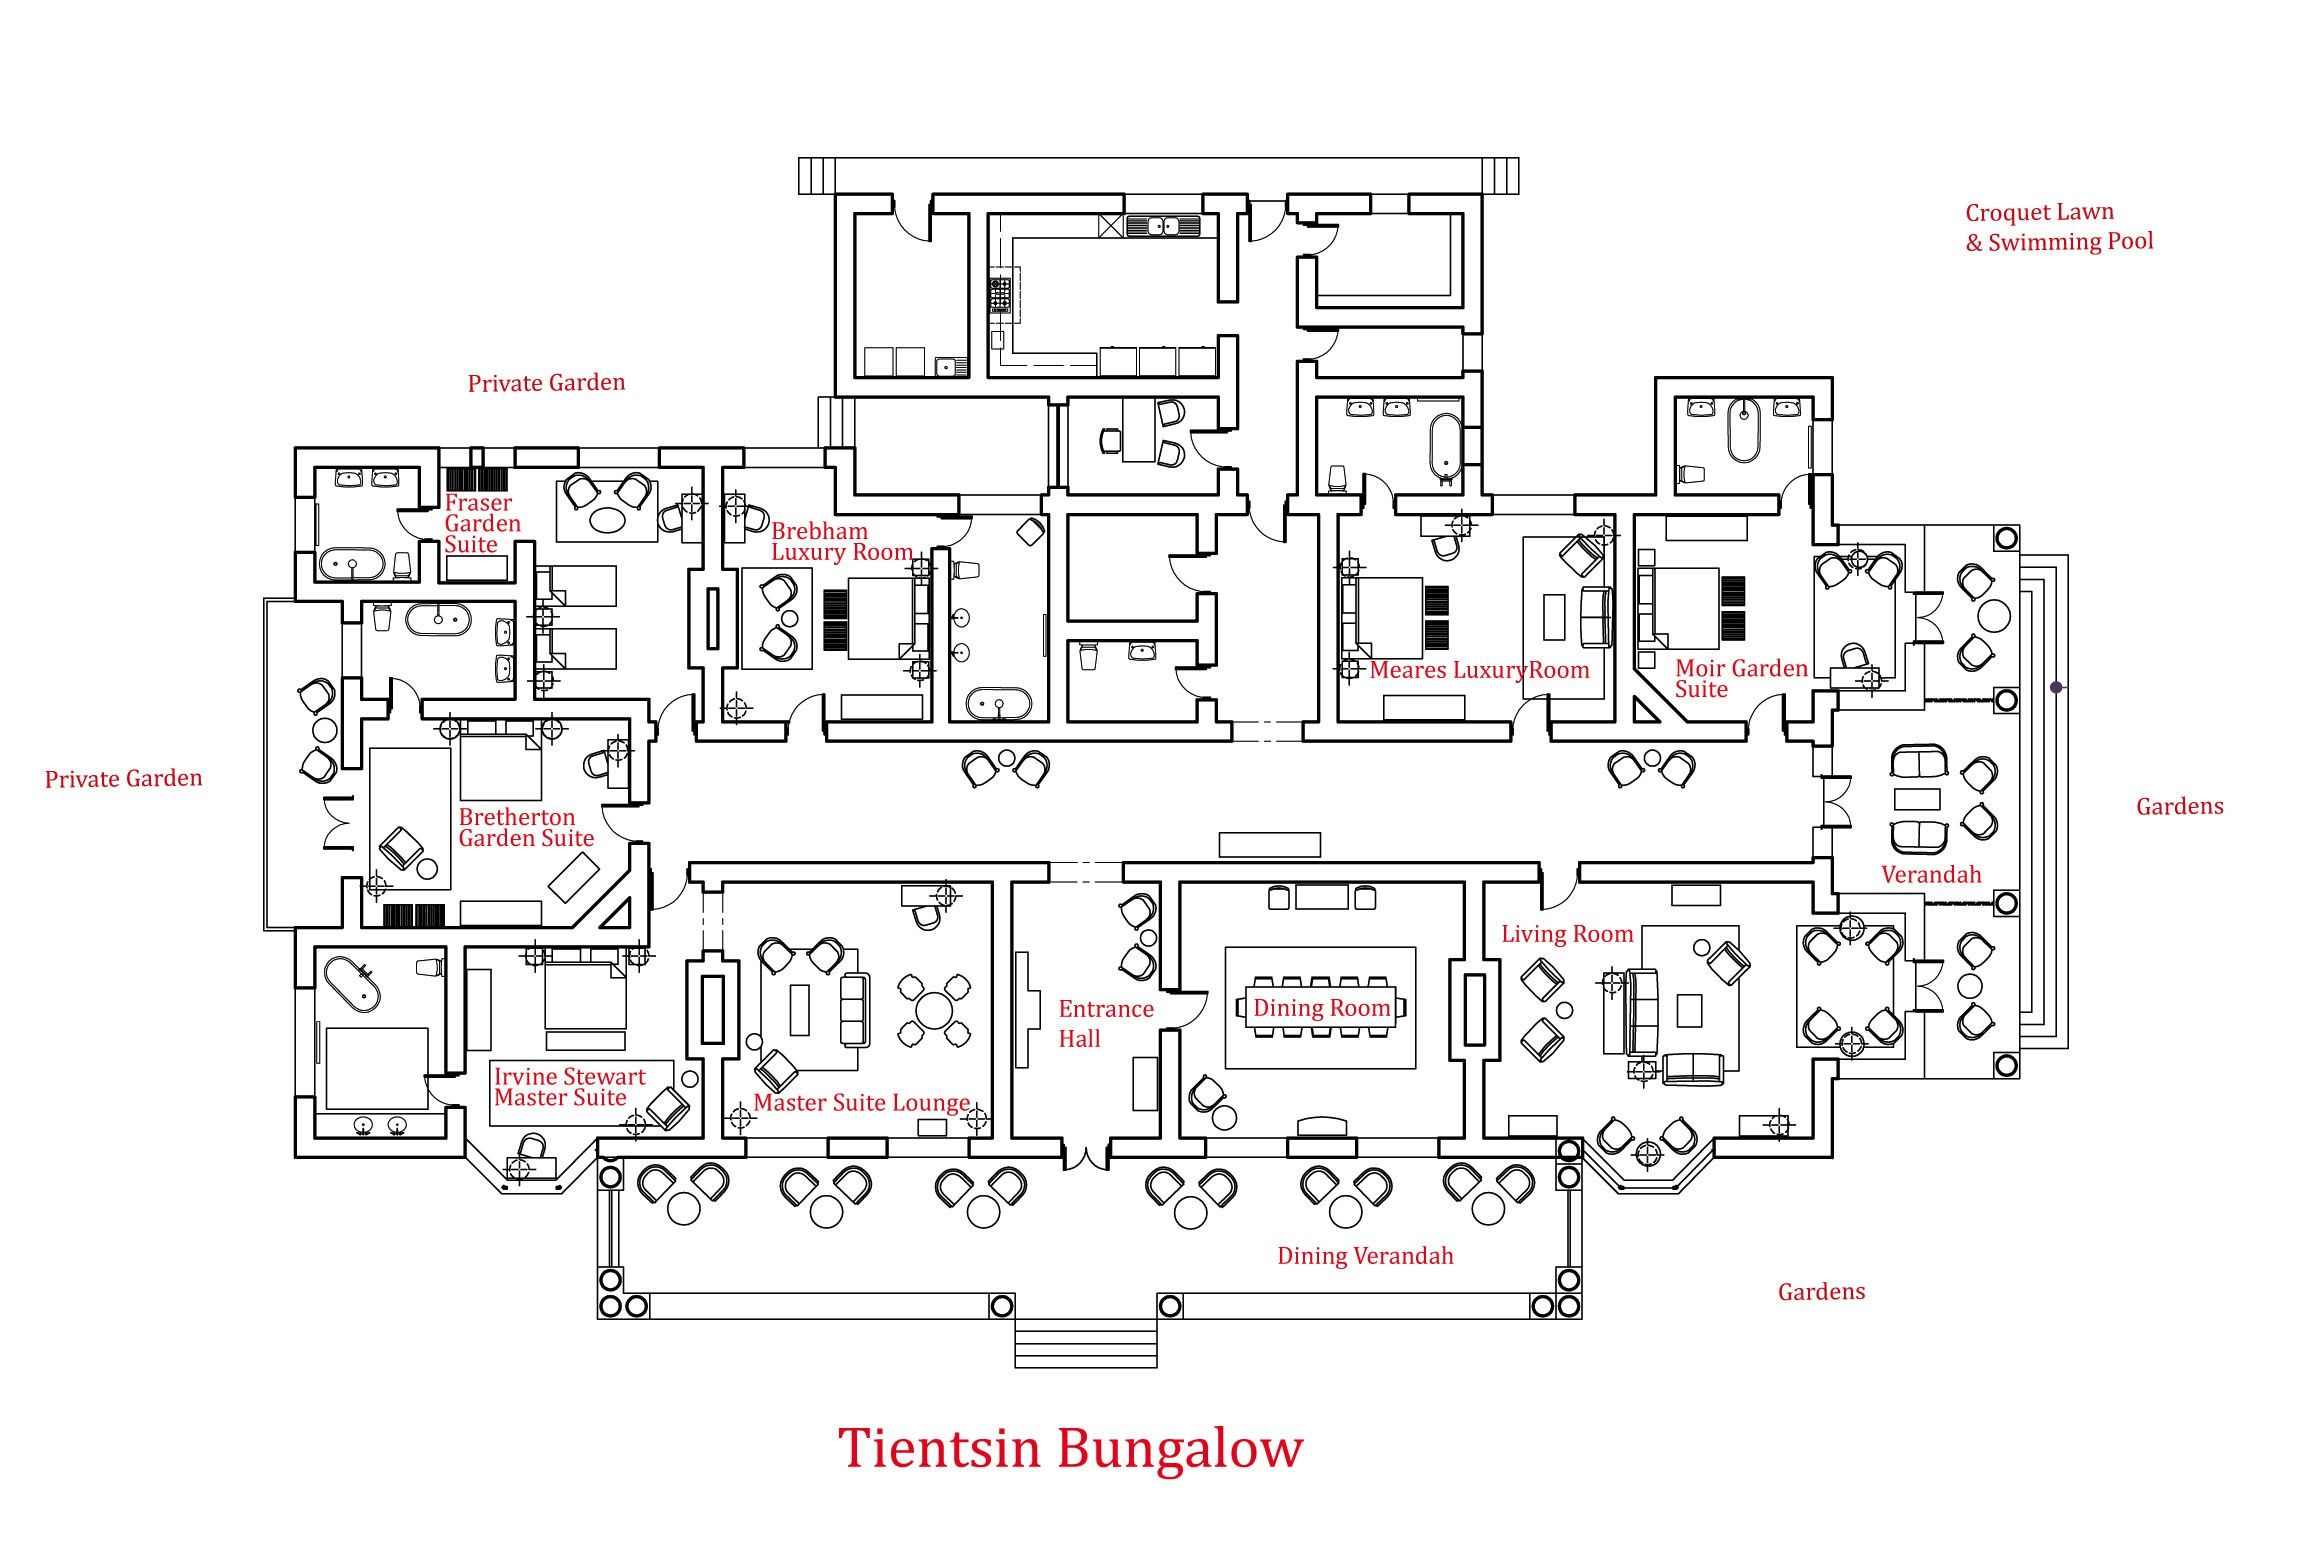 Bungalow Floor Plans image result for floor plans for bungalows Worlds Nicest Resort Floor Plans View All Bungalow Images View Bungalow Floor Plan